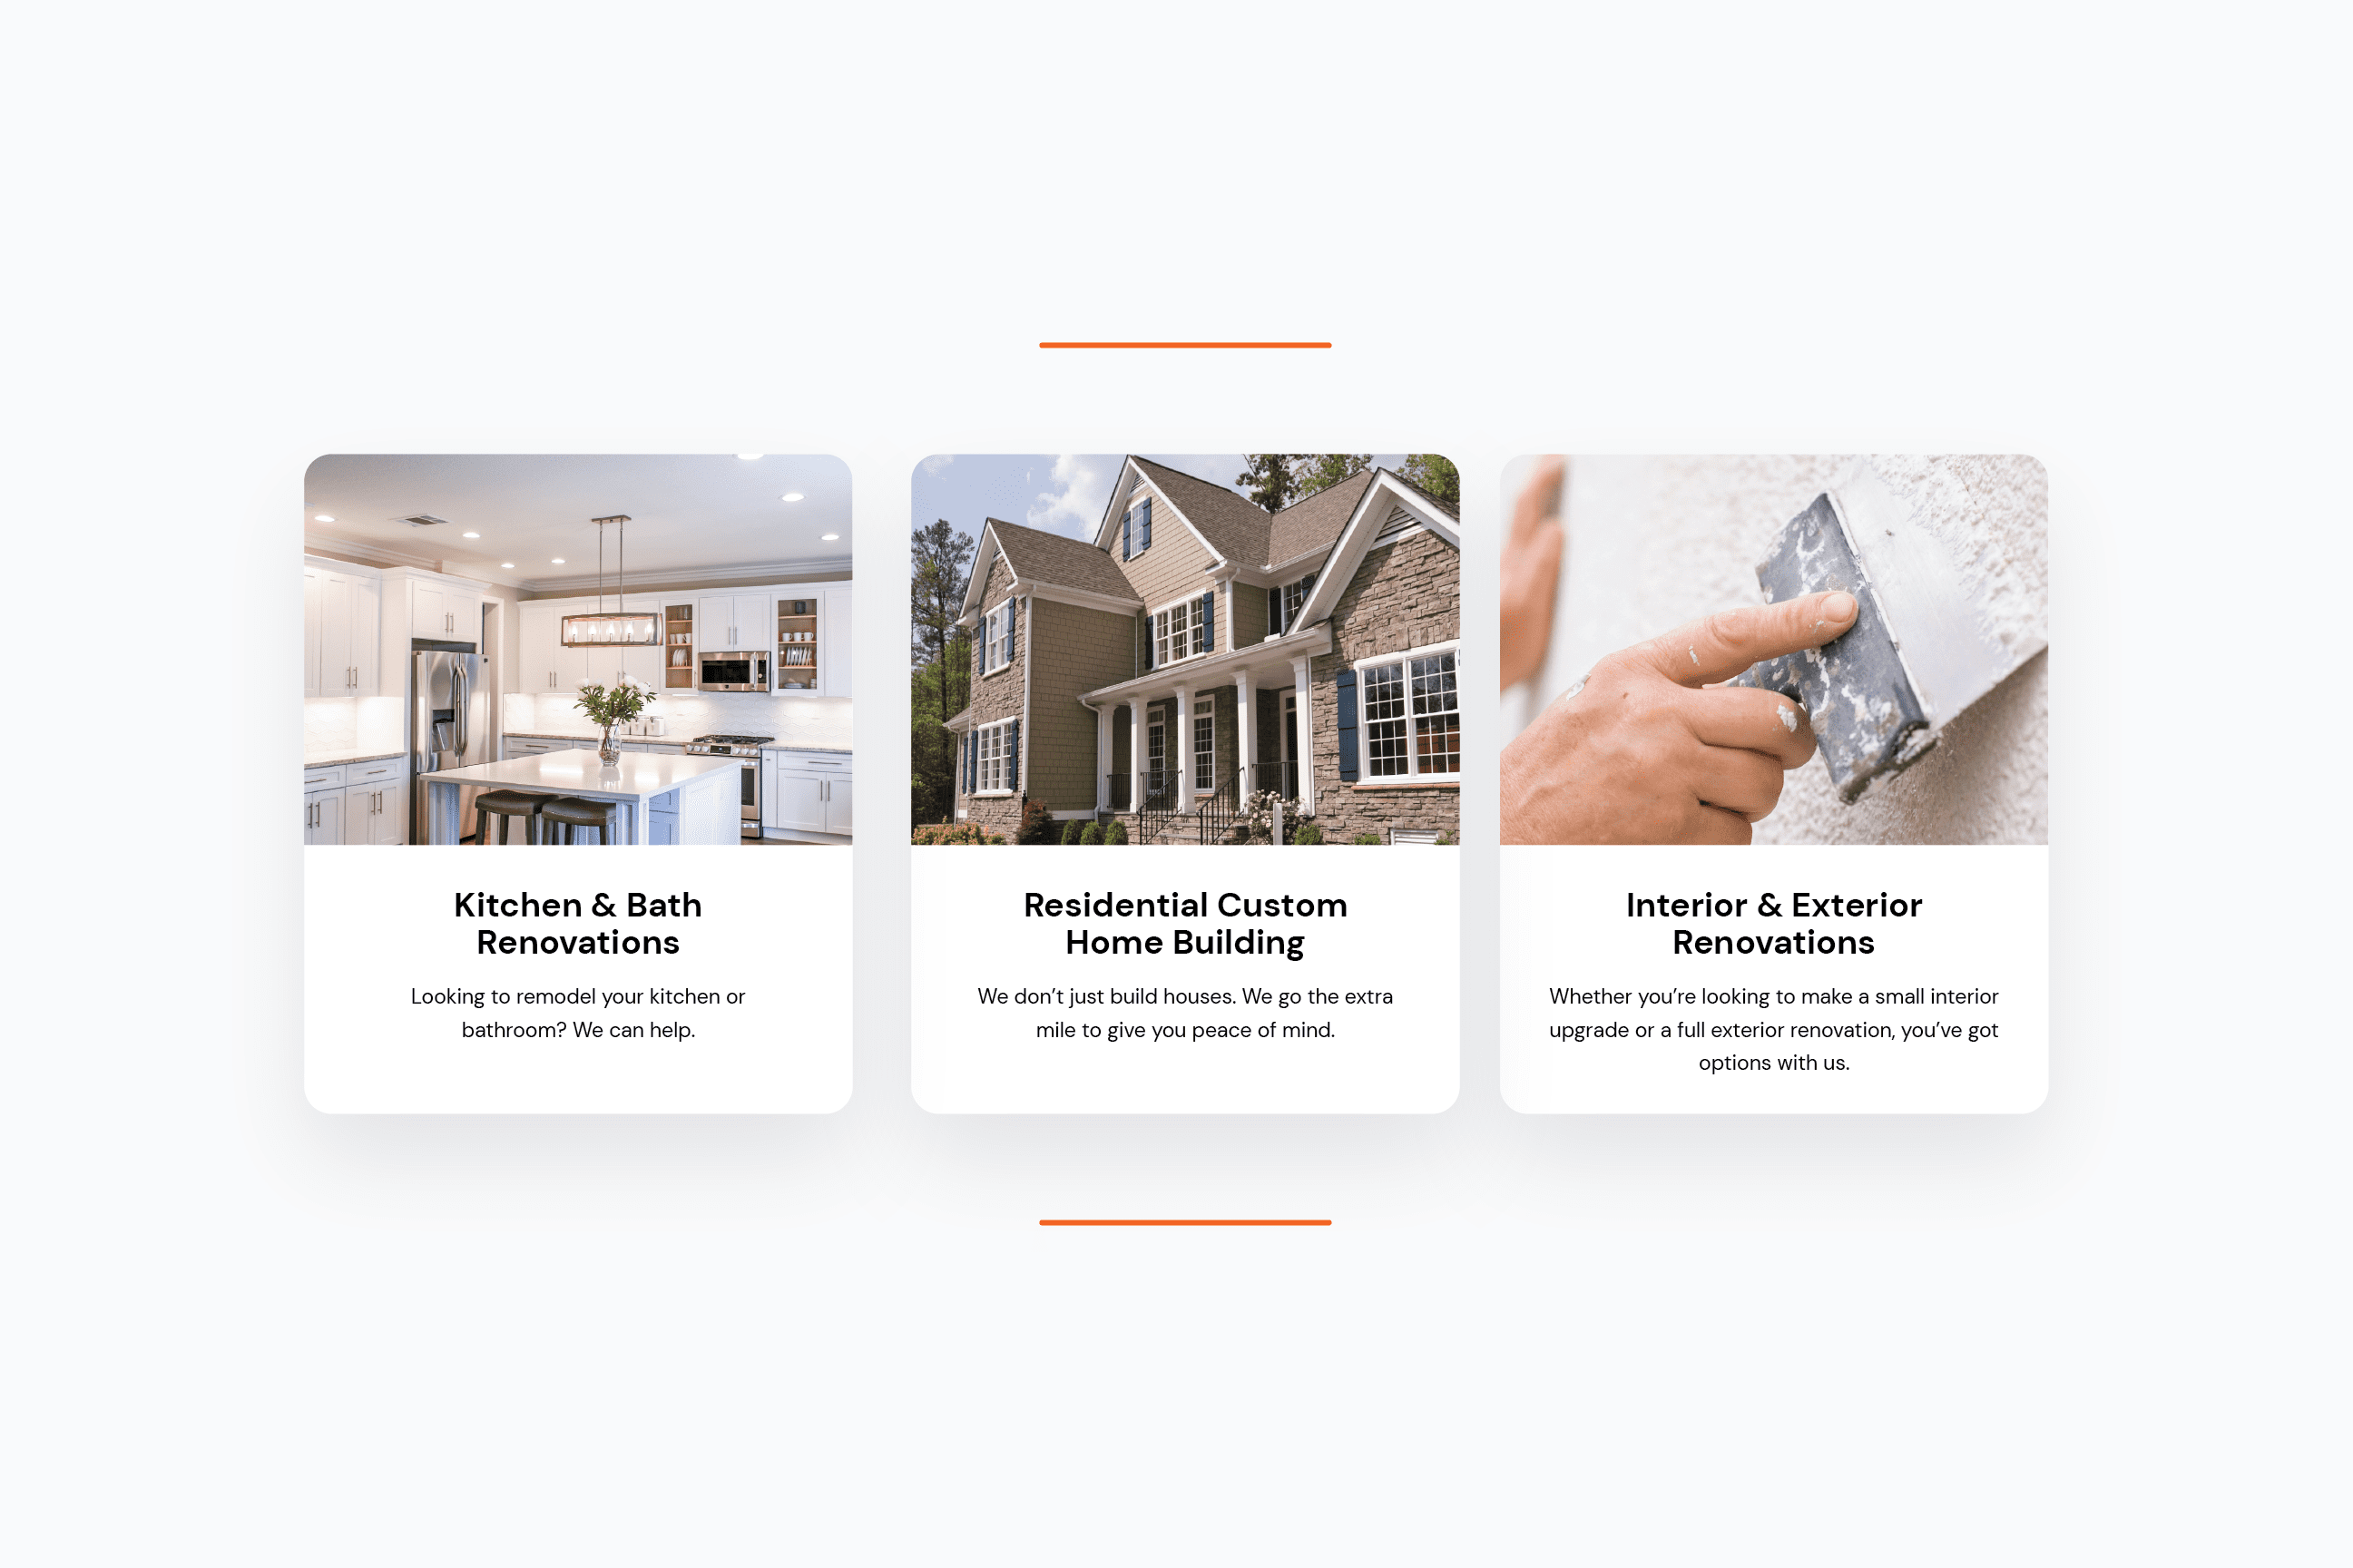 Menard & Robertson specializes in Kitchen & Bath Renovations, Residential Custom Home Building, and Interior & Exterior Renovations.